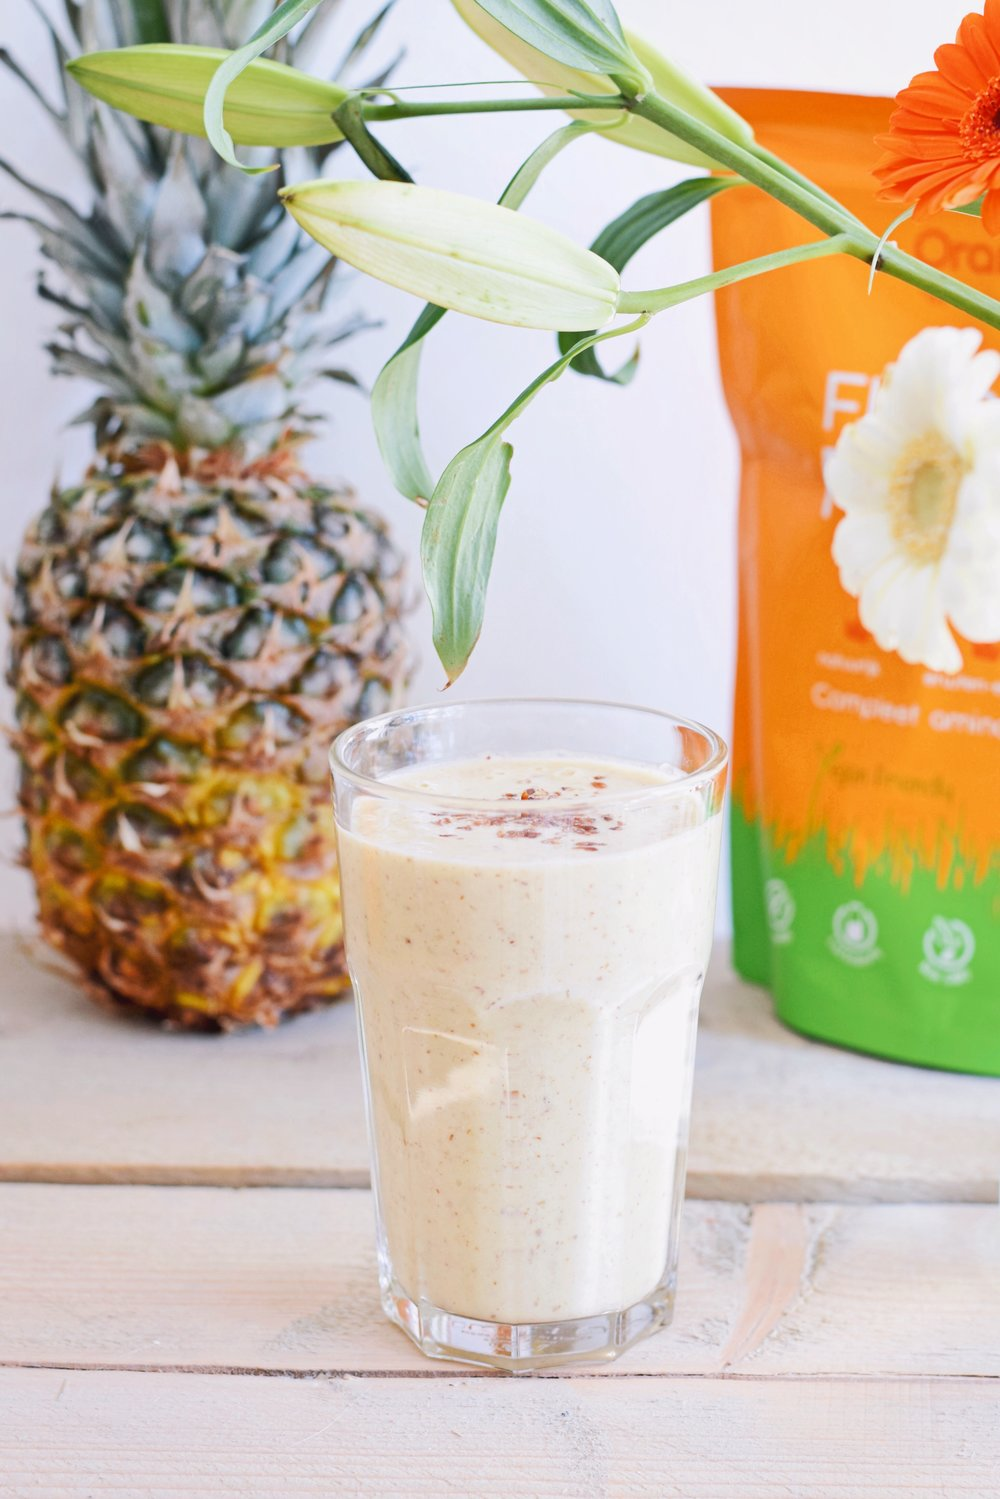 HEALTHY SMOOTHIE | PINEAPPLE BANANA SMOOTHIE